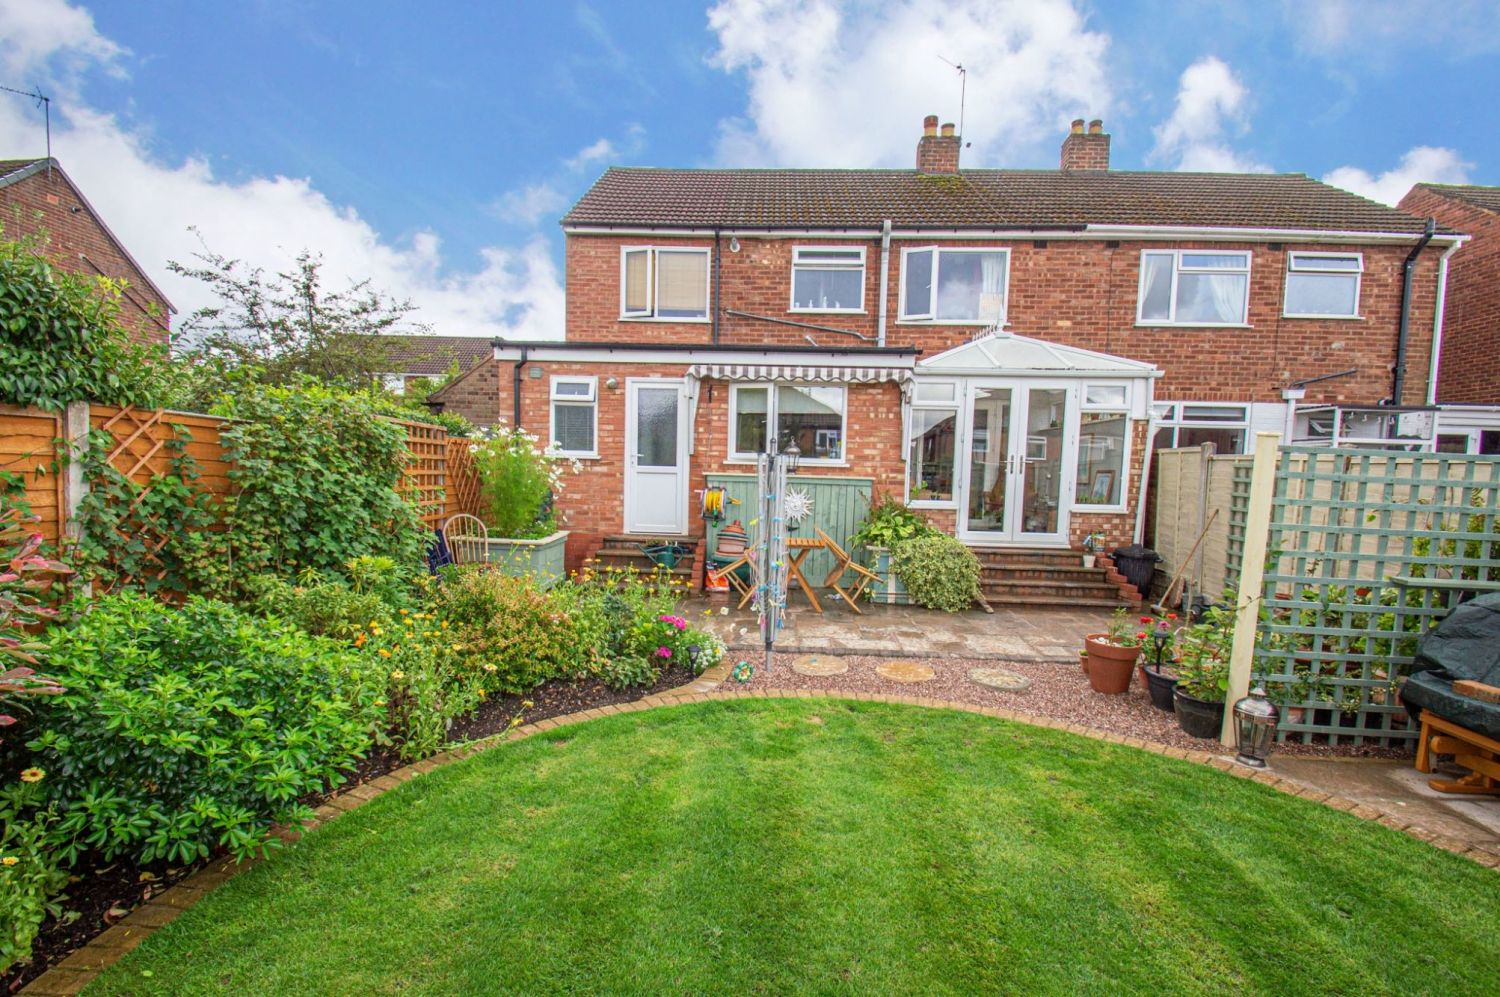 4 bed semi-detached for sale in Wheatcroft Close, Halesowen  - Property Image 20